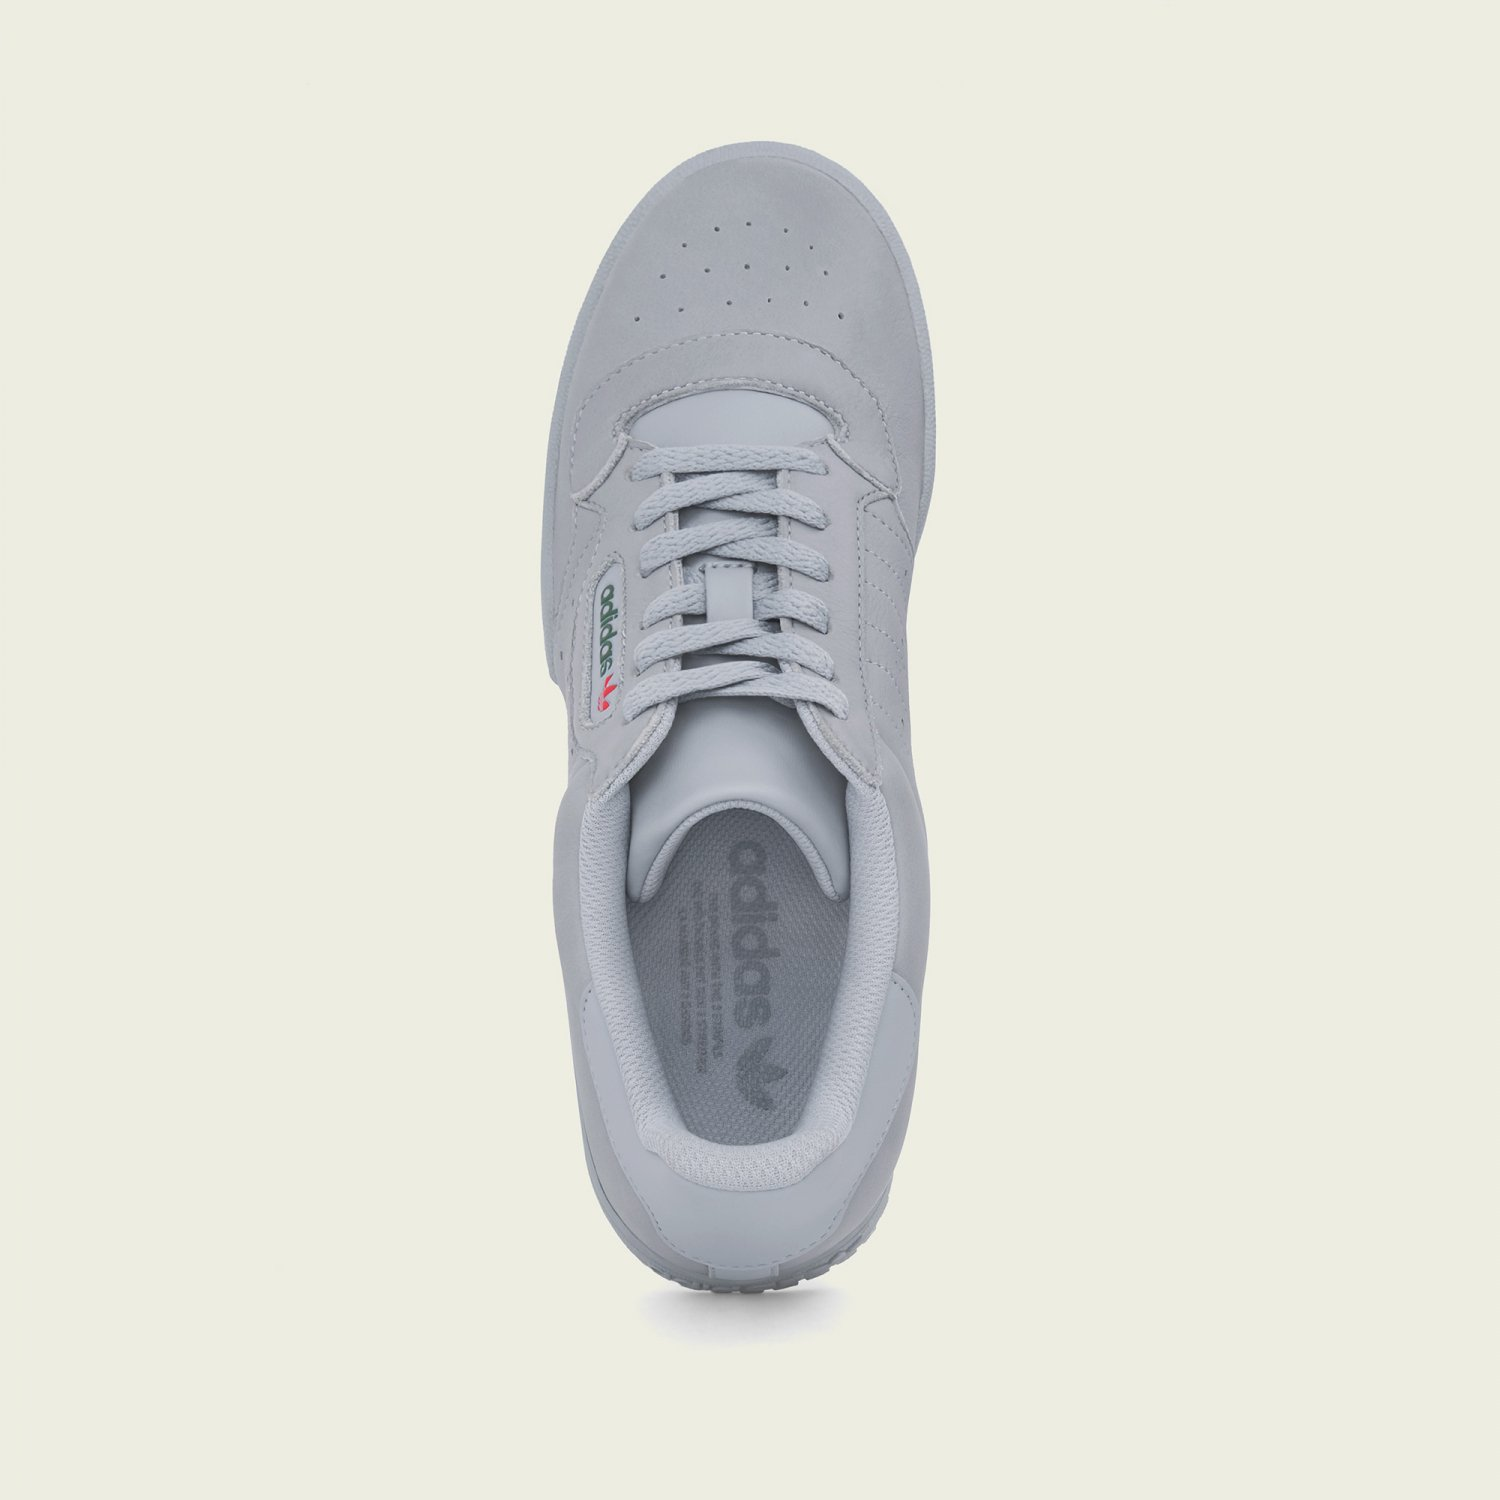 Yeezy Powerphase Calabasas Grey [3]